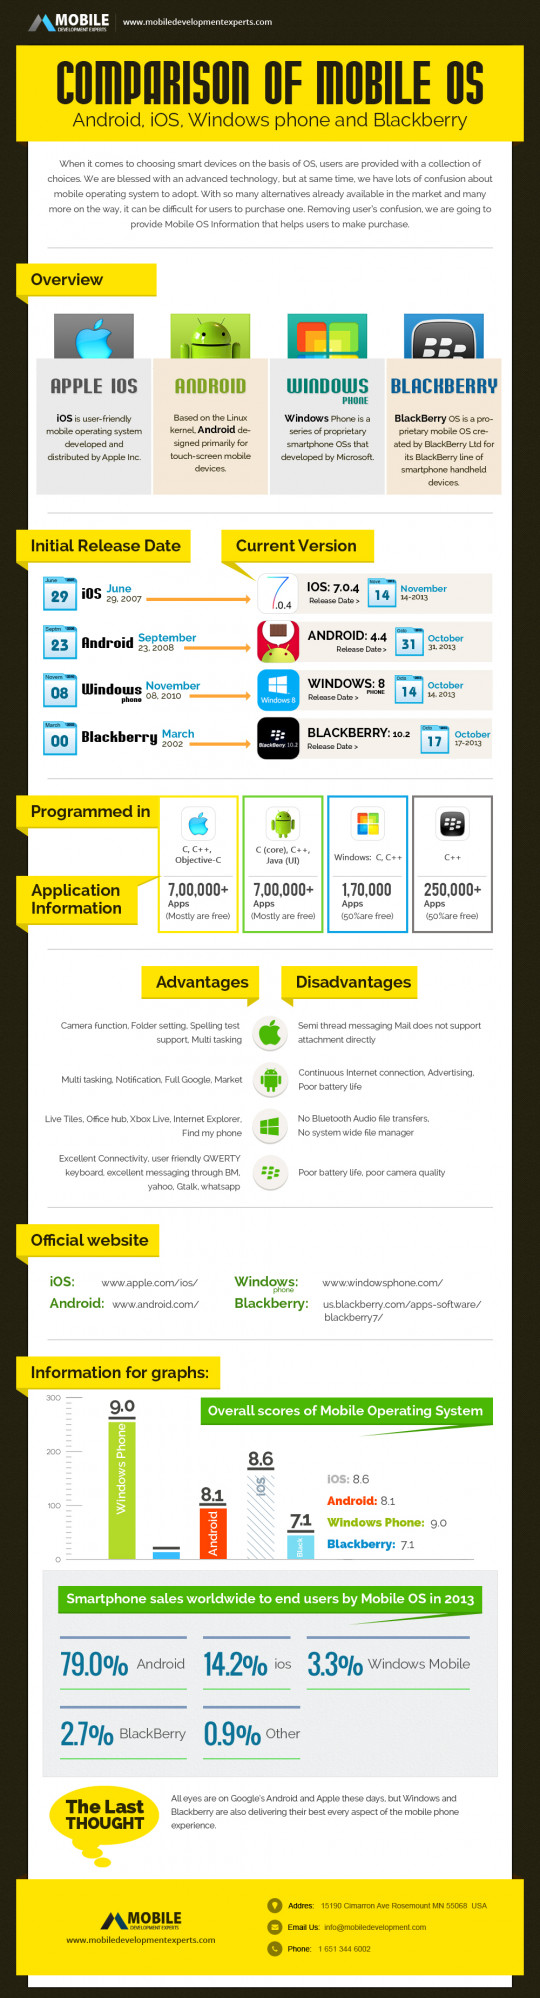 Comparison of Mobile OS - Android, iOS, Windows and Blackberry